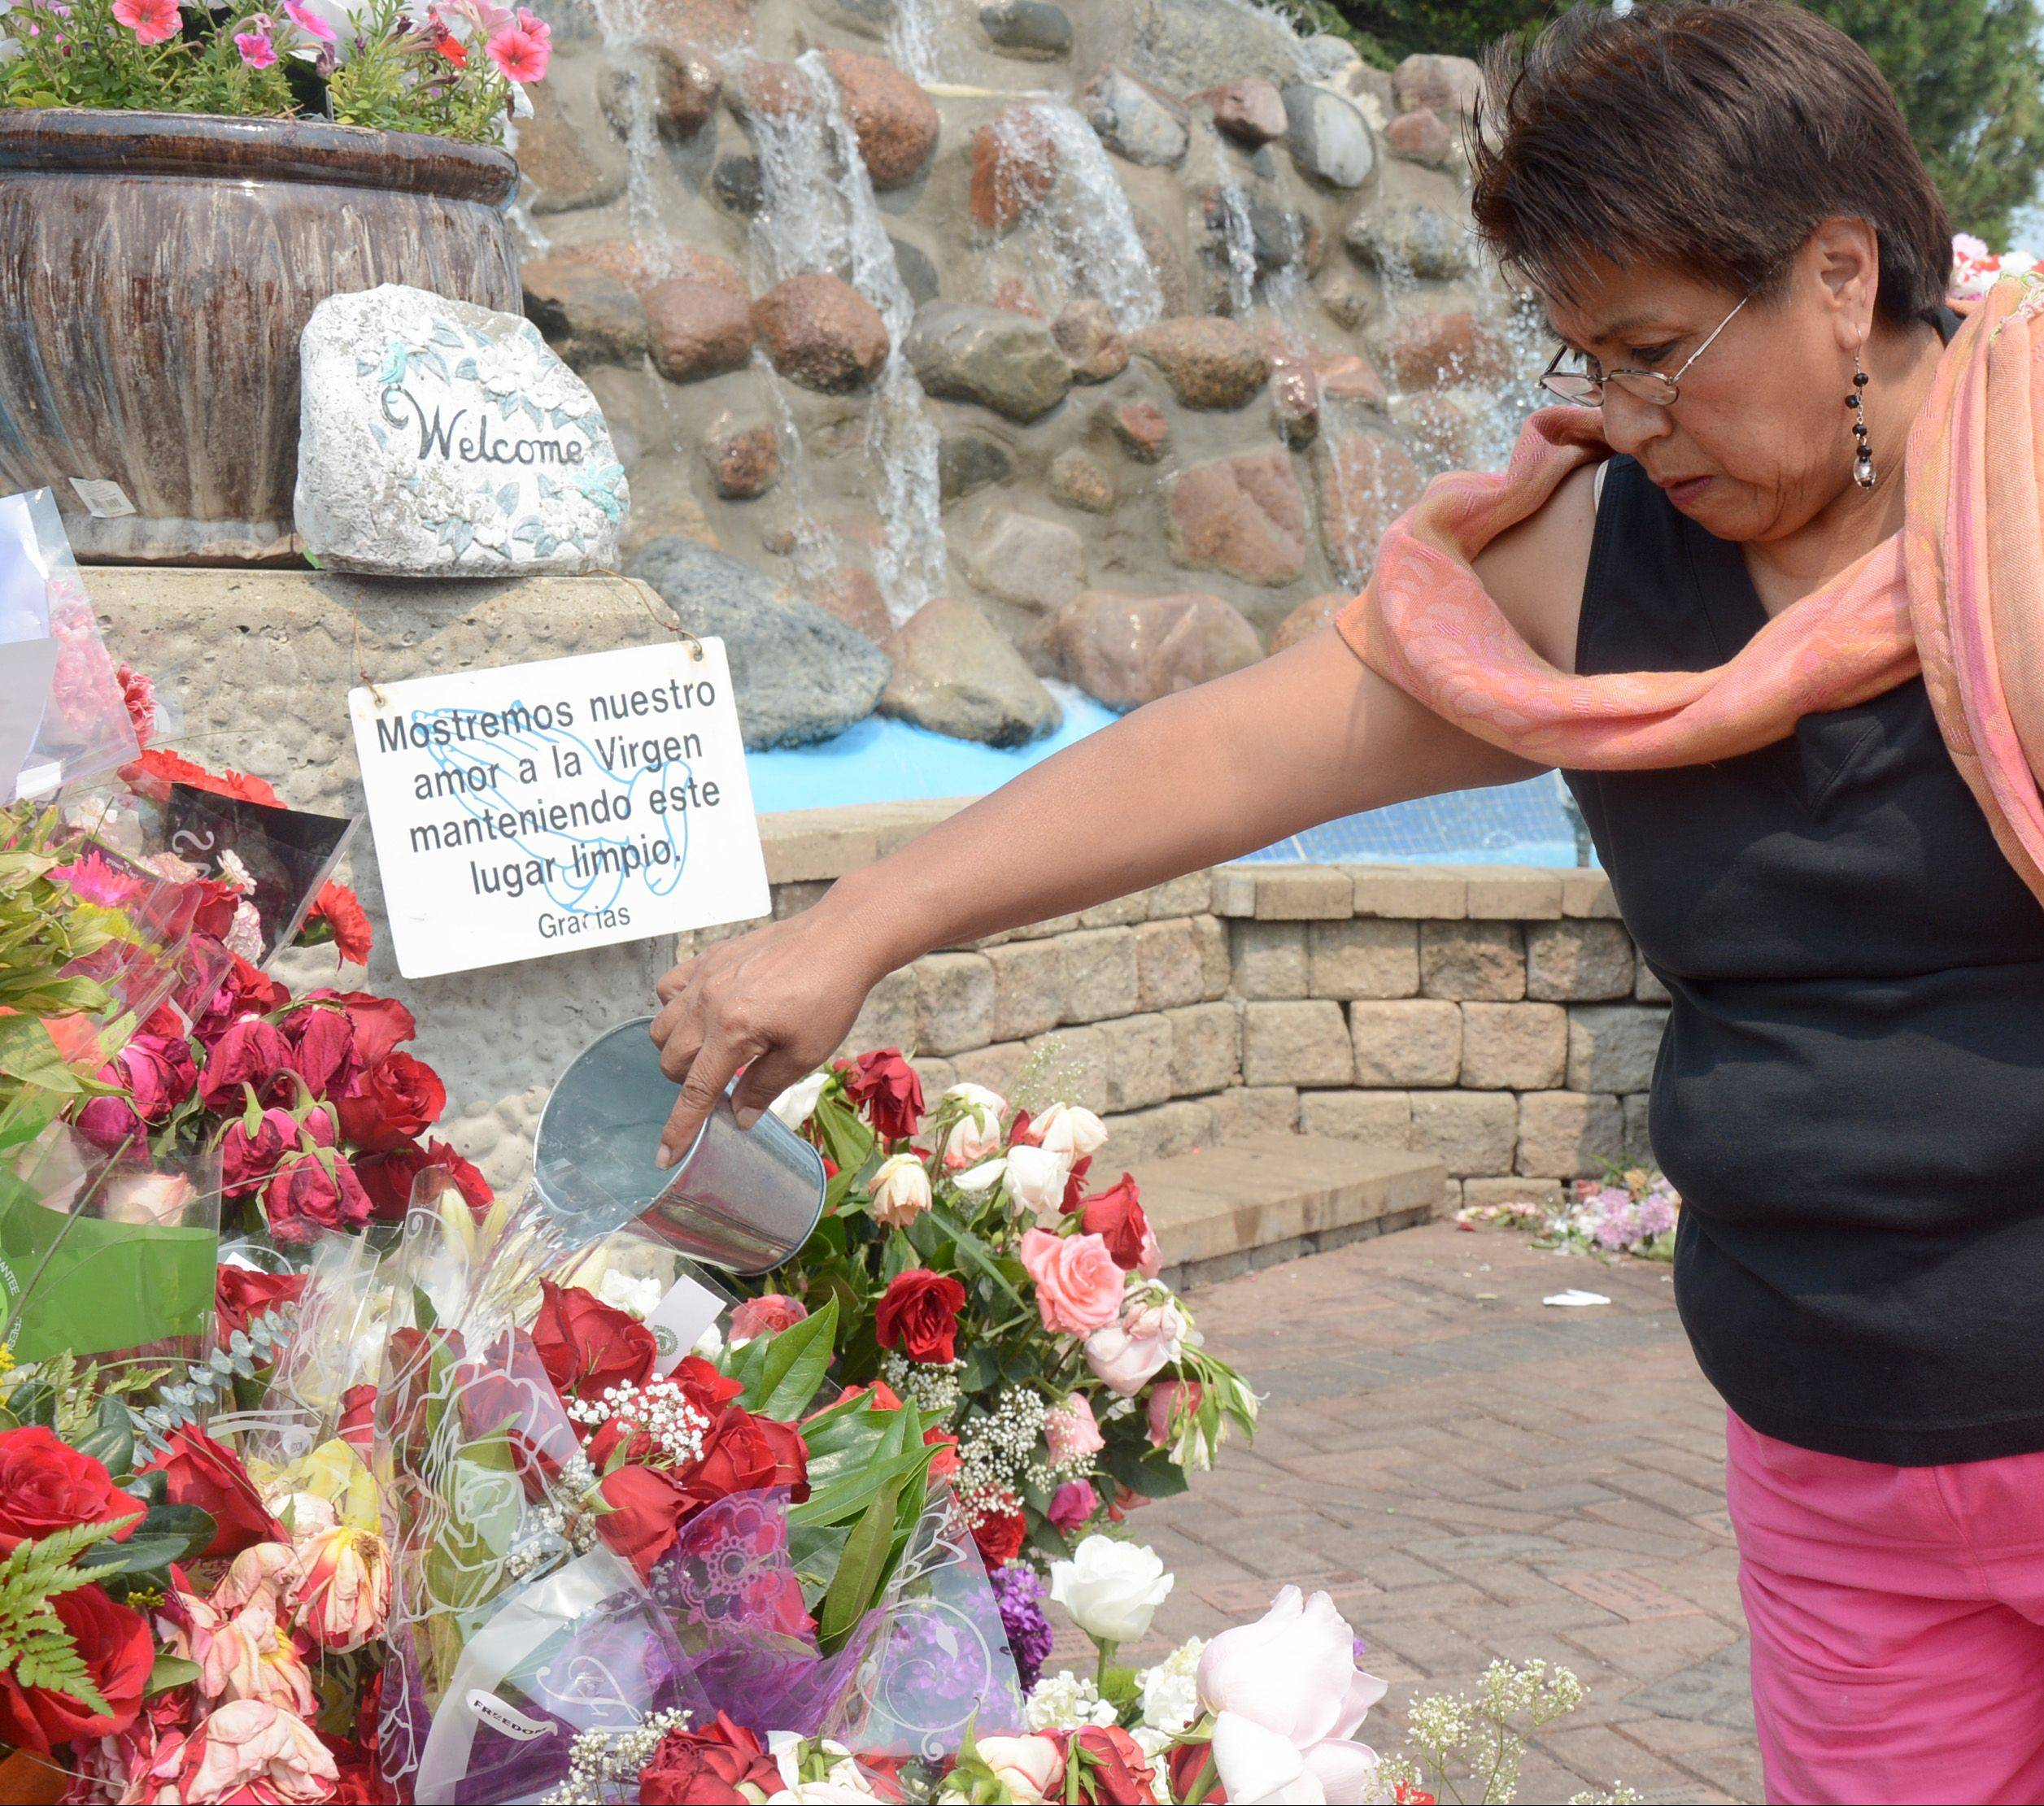 Juana Ocompo of Chicago waters flowers Monday at the Our Lady of Guadalupe Shrine in Des Plaines. The Founding Committee of the Des Plaines Our Lady of Guadalupe Shrine announced Monday they're launching a campaign to build a basilica at the site.